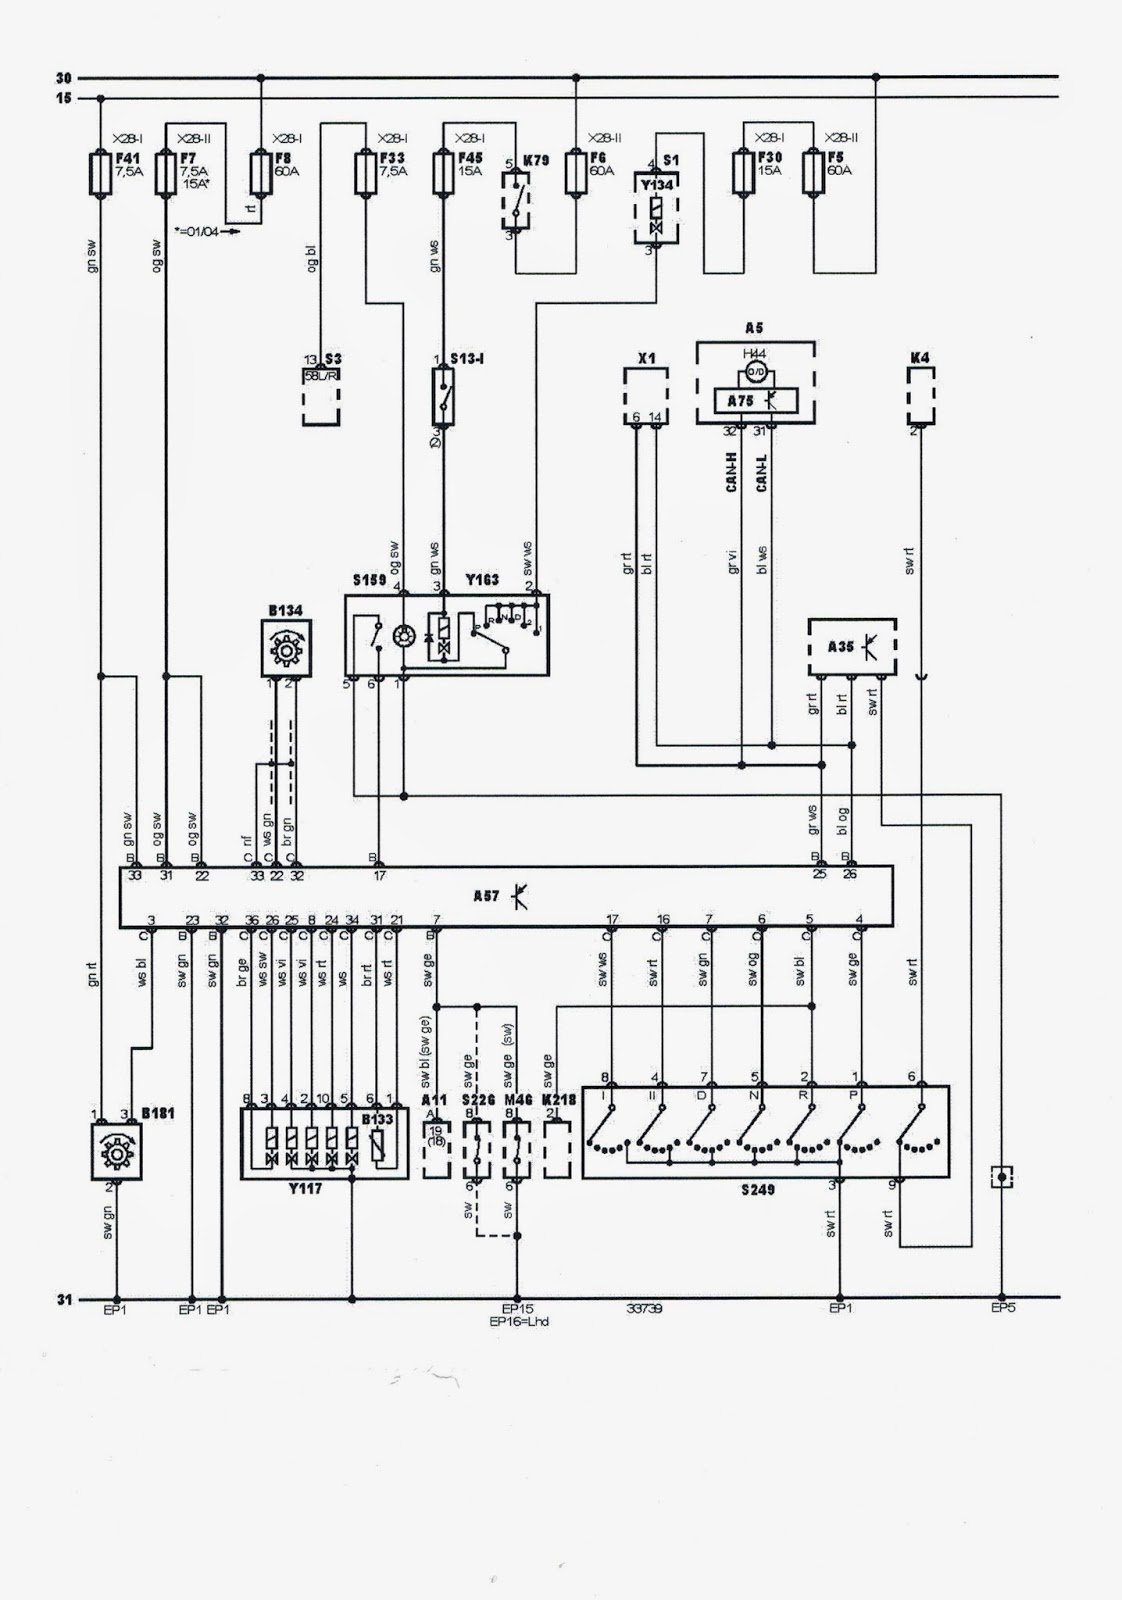 Diagrama Caja De Fusibles. Diagram. Auto Wiring Diagram